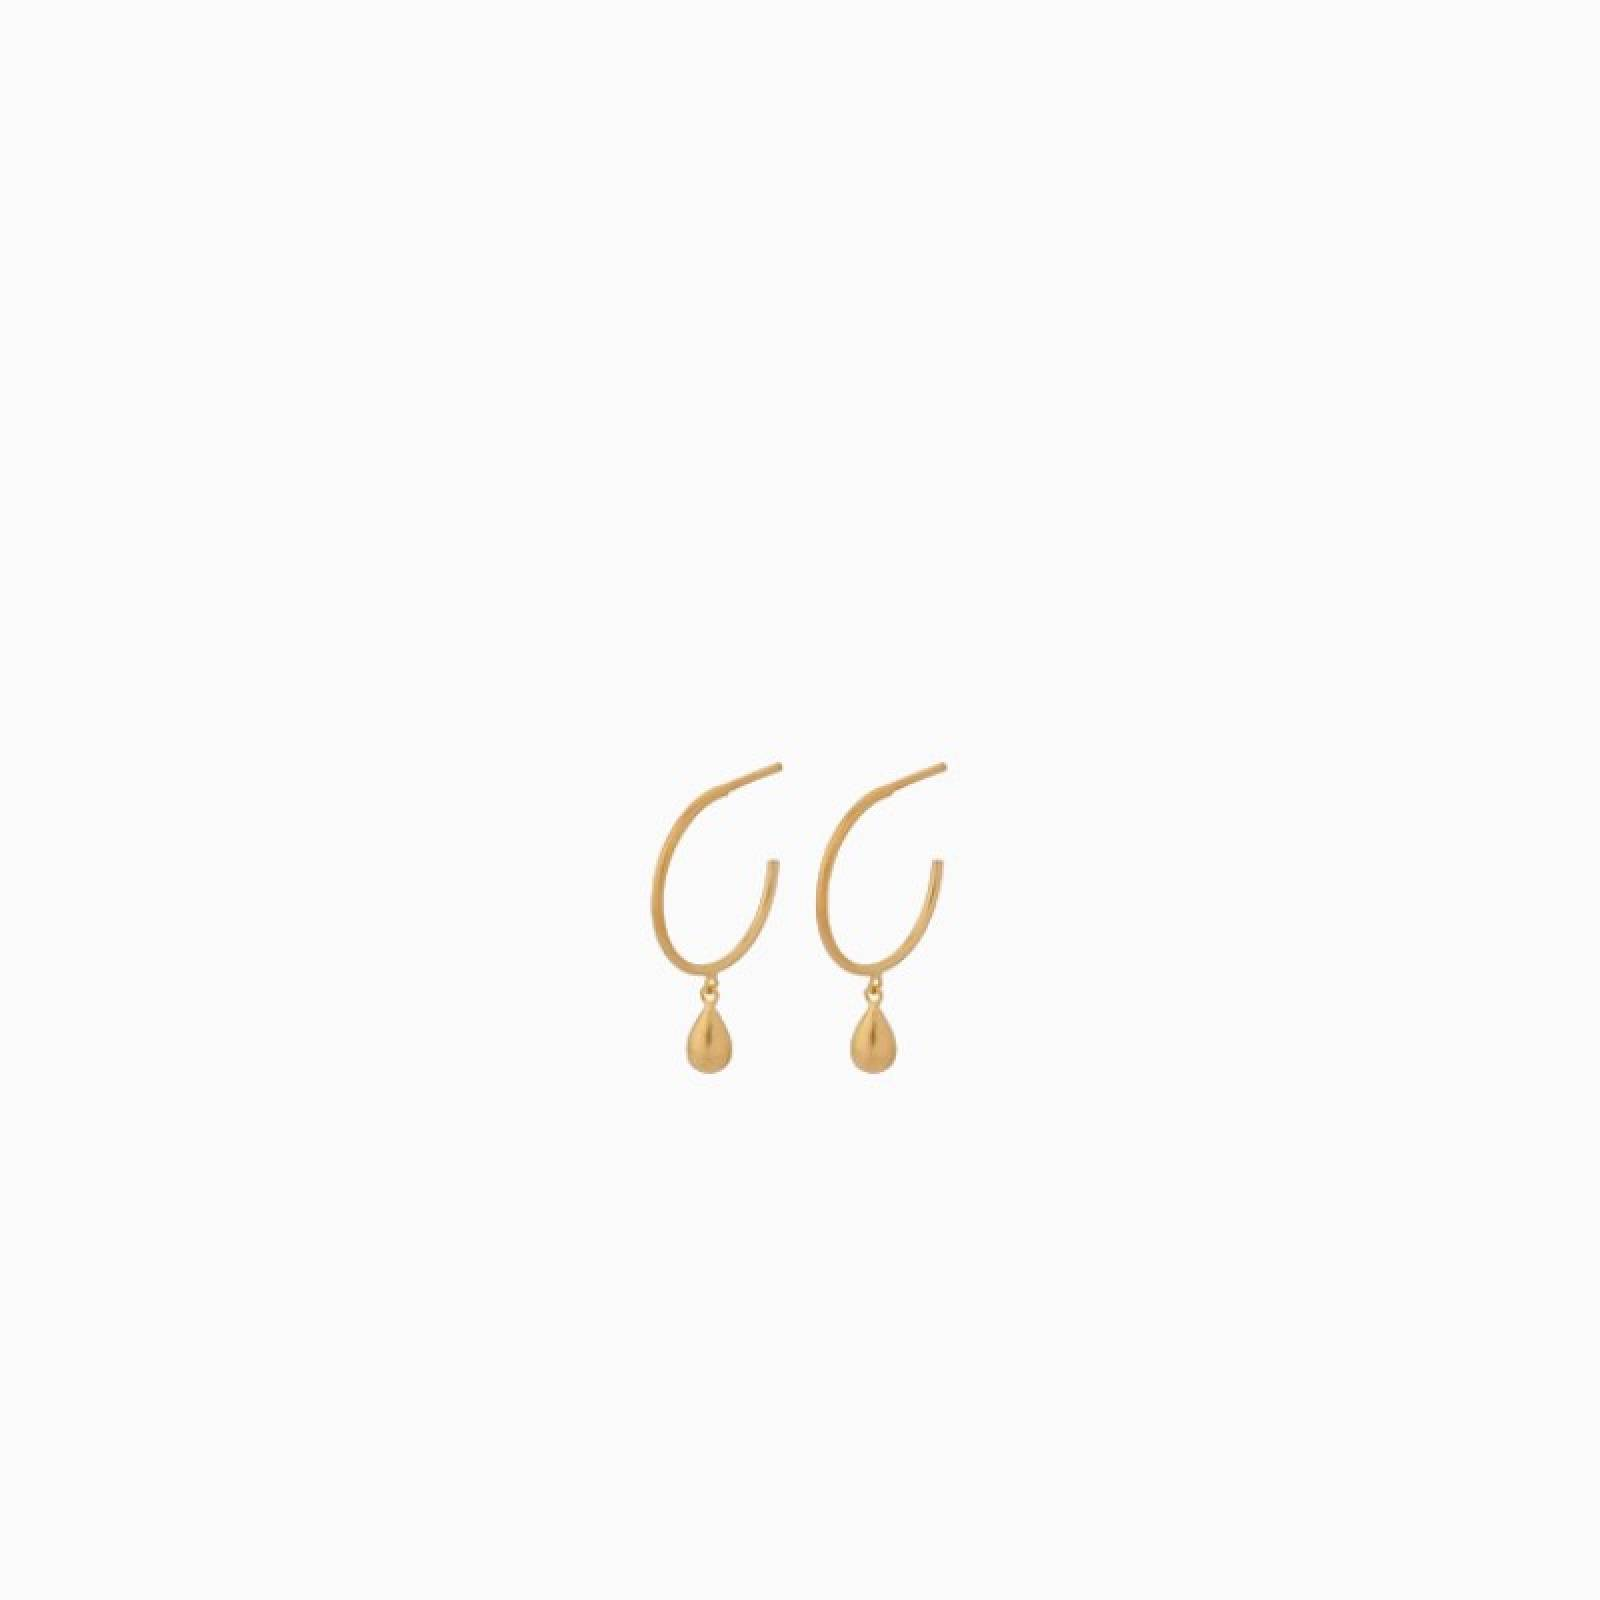 Waterdrop Hoop Earrings In Gold By Pernille Corydon